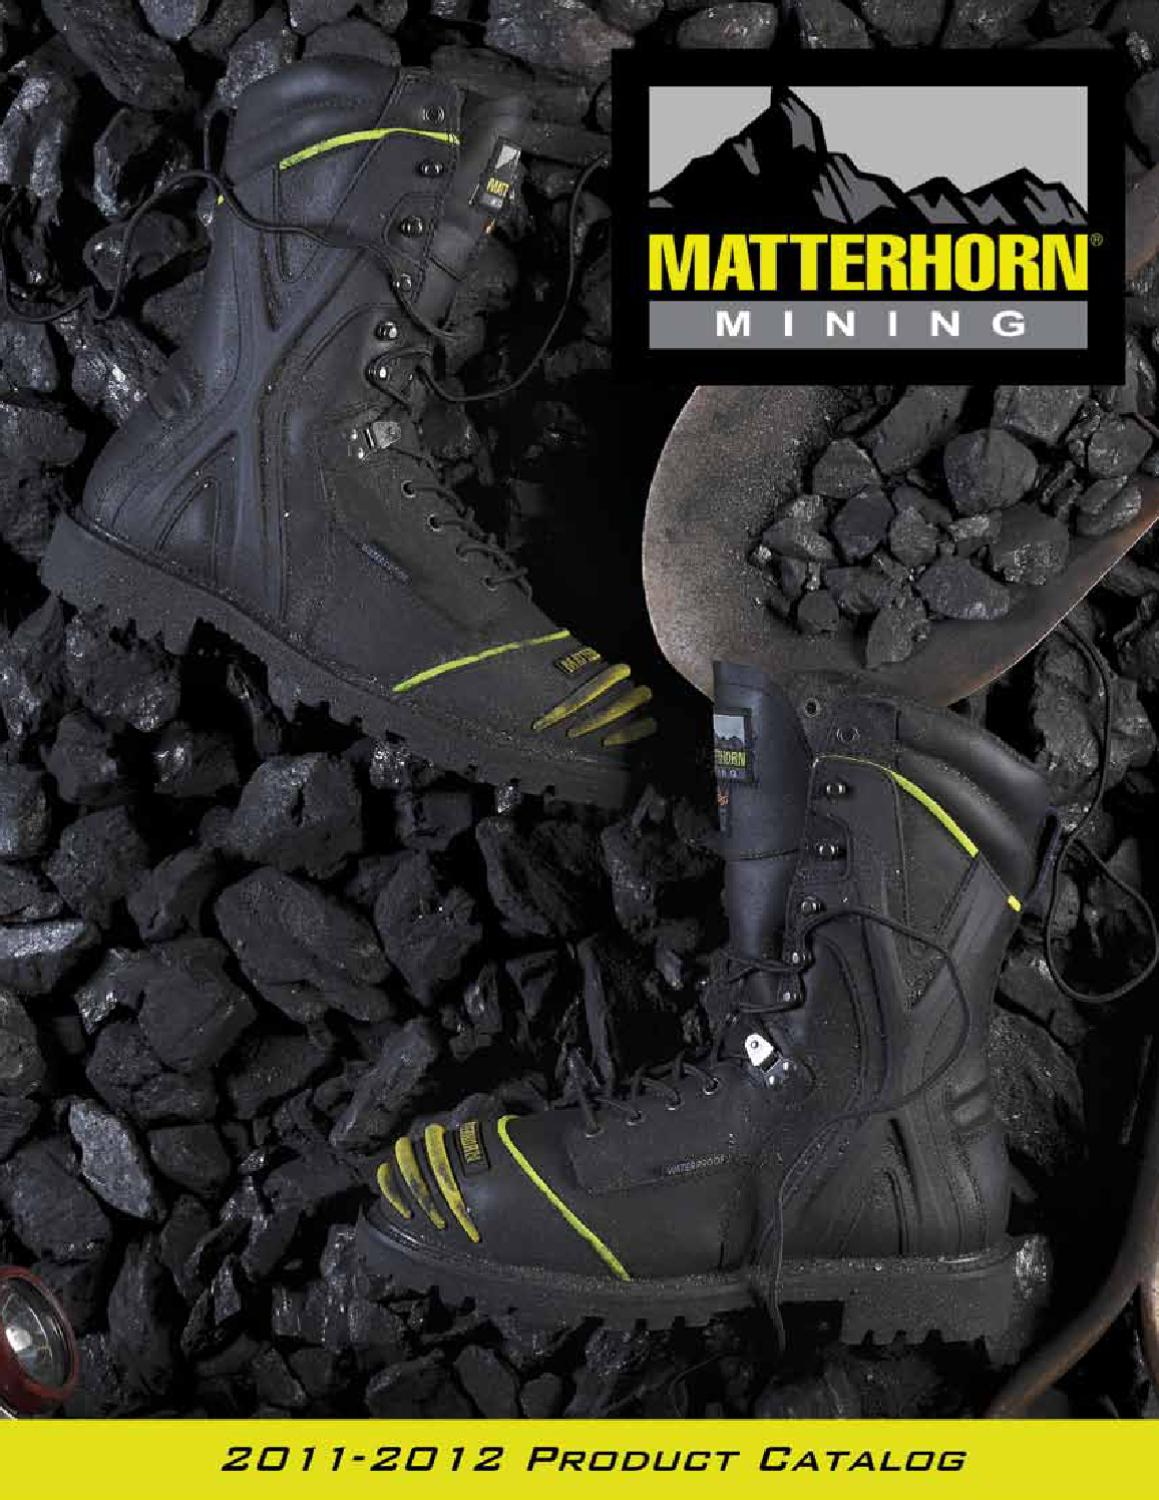 9930351ad0f Matterhorn Mining Footwear by H.H. Brown Work & Outdoor Group - issuu